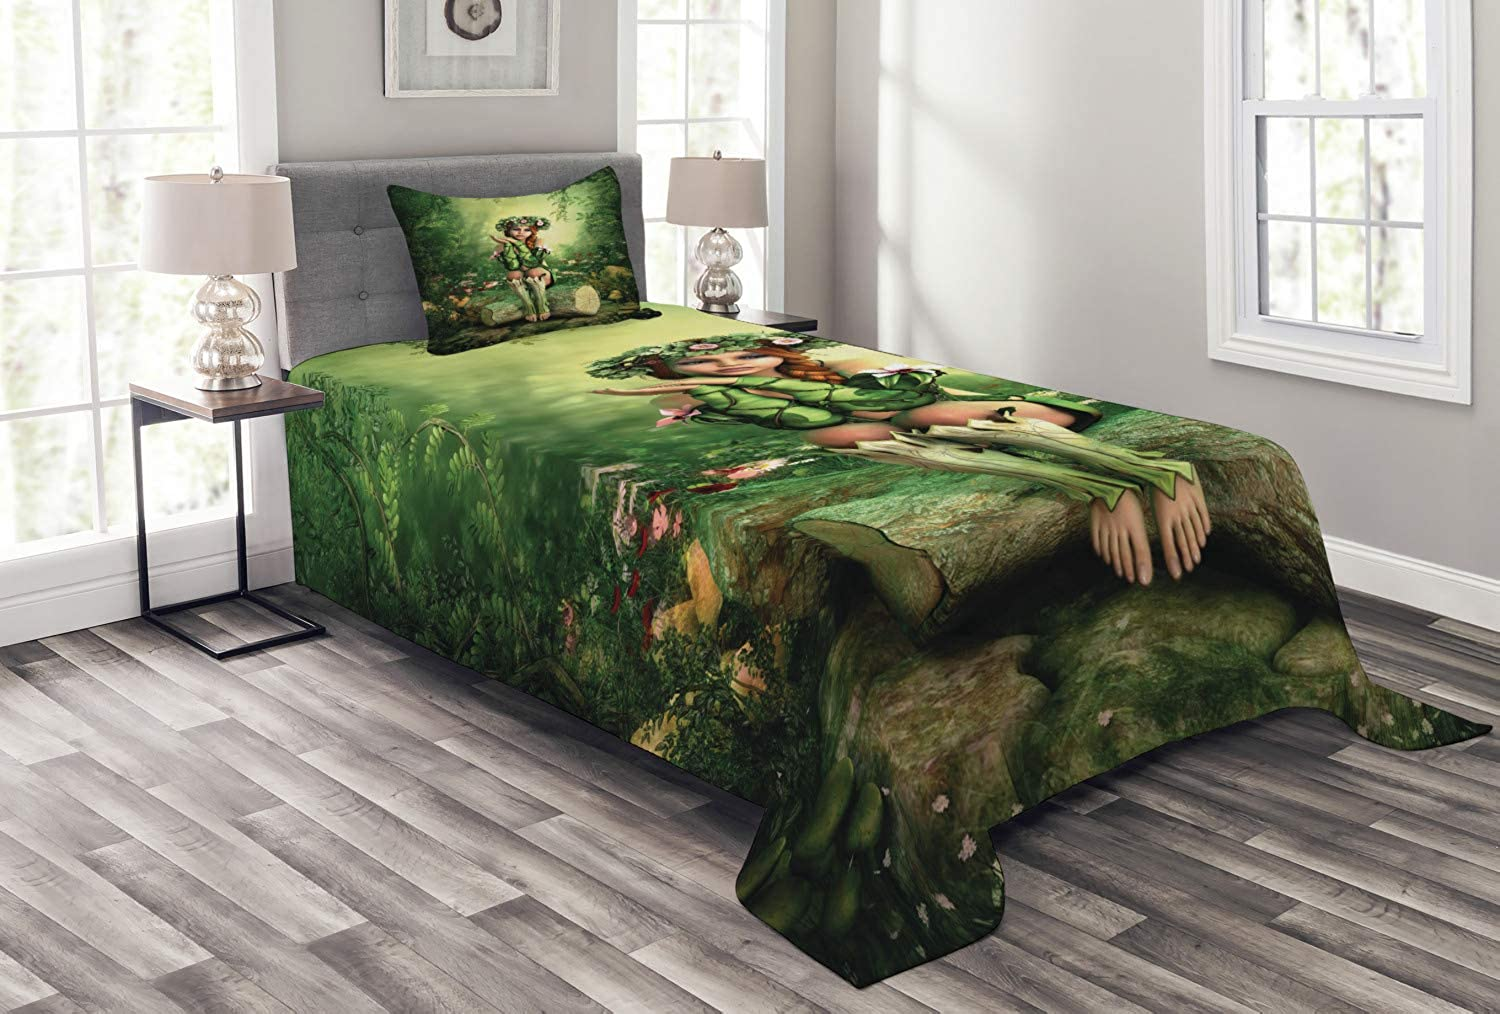 Ambesonne Fairy Bedspread Set Twin Size, Computer Art Elf Girl with Wreath on Her Head Sitting on a Tree Stump Fantastic, 2 Piece Decorative Quilted Coverlet with 1 Pillow Sham, Green Beige Pink